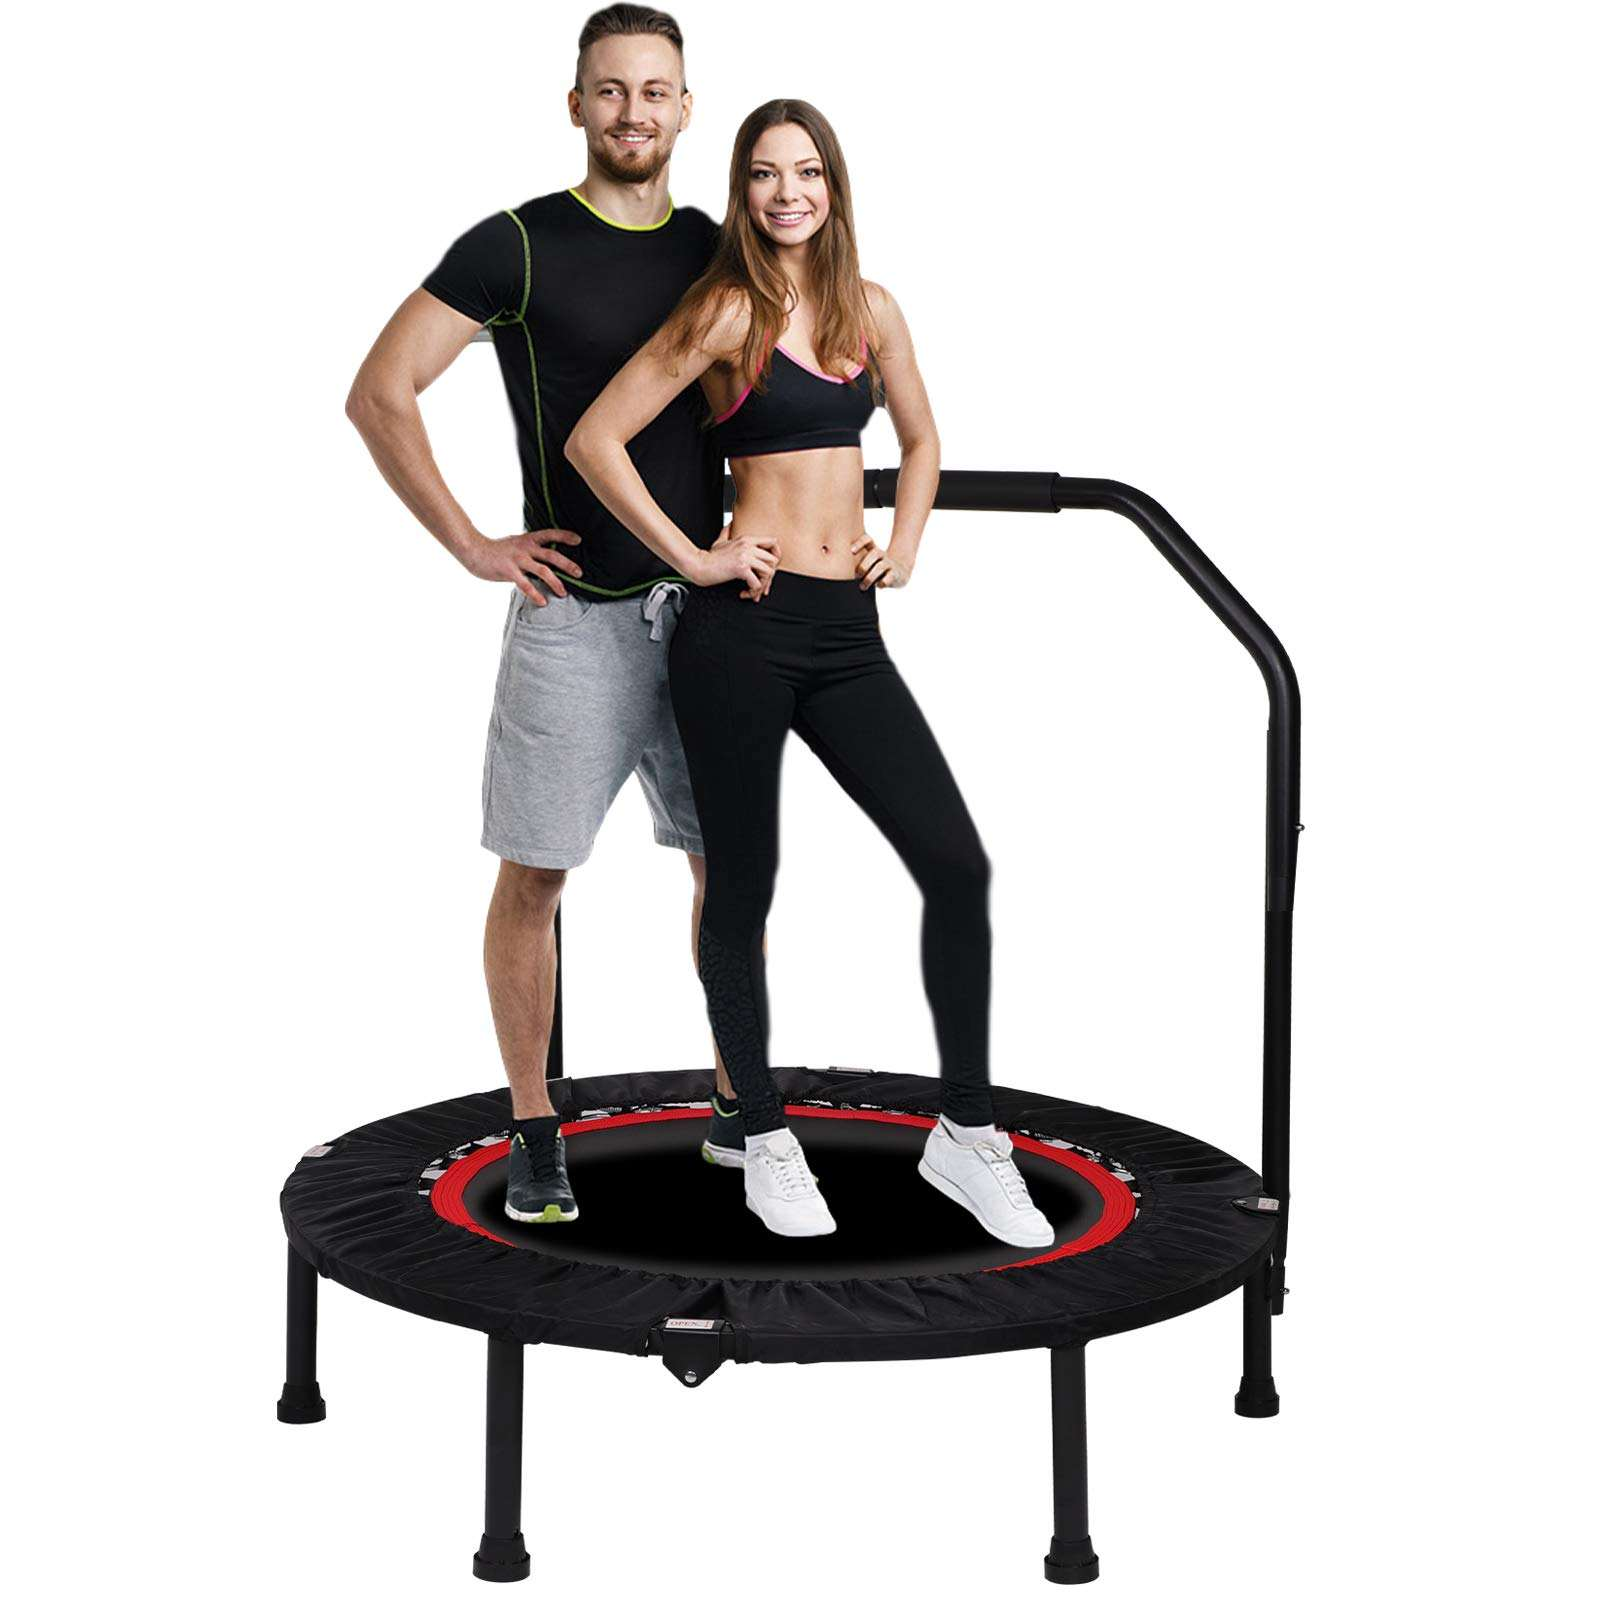 Trampolines Home Sport Oefening Gewicht Fitness Gym Apparatuur Workout Fabrikanten Verkoop Mini Park Ronde 10ft Outdoor Trampolines